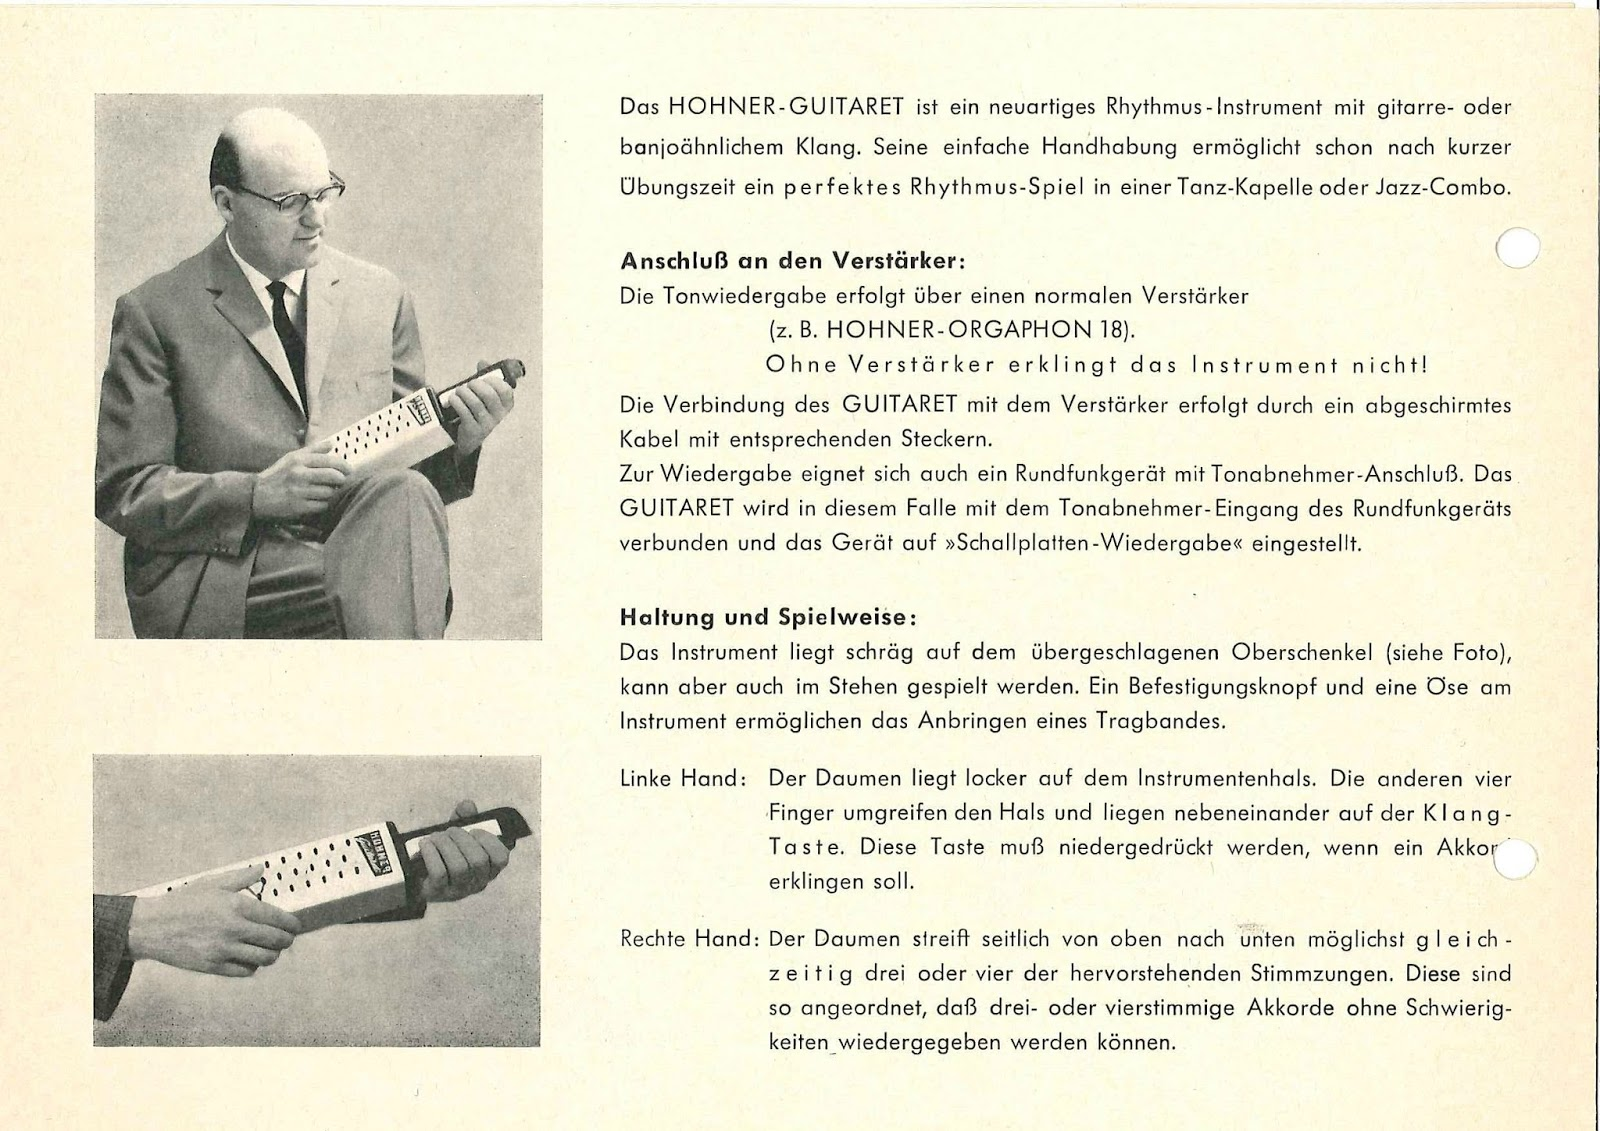 PREPARED GUITAR: Guitaret by Ernst Zacharias